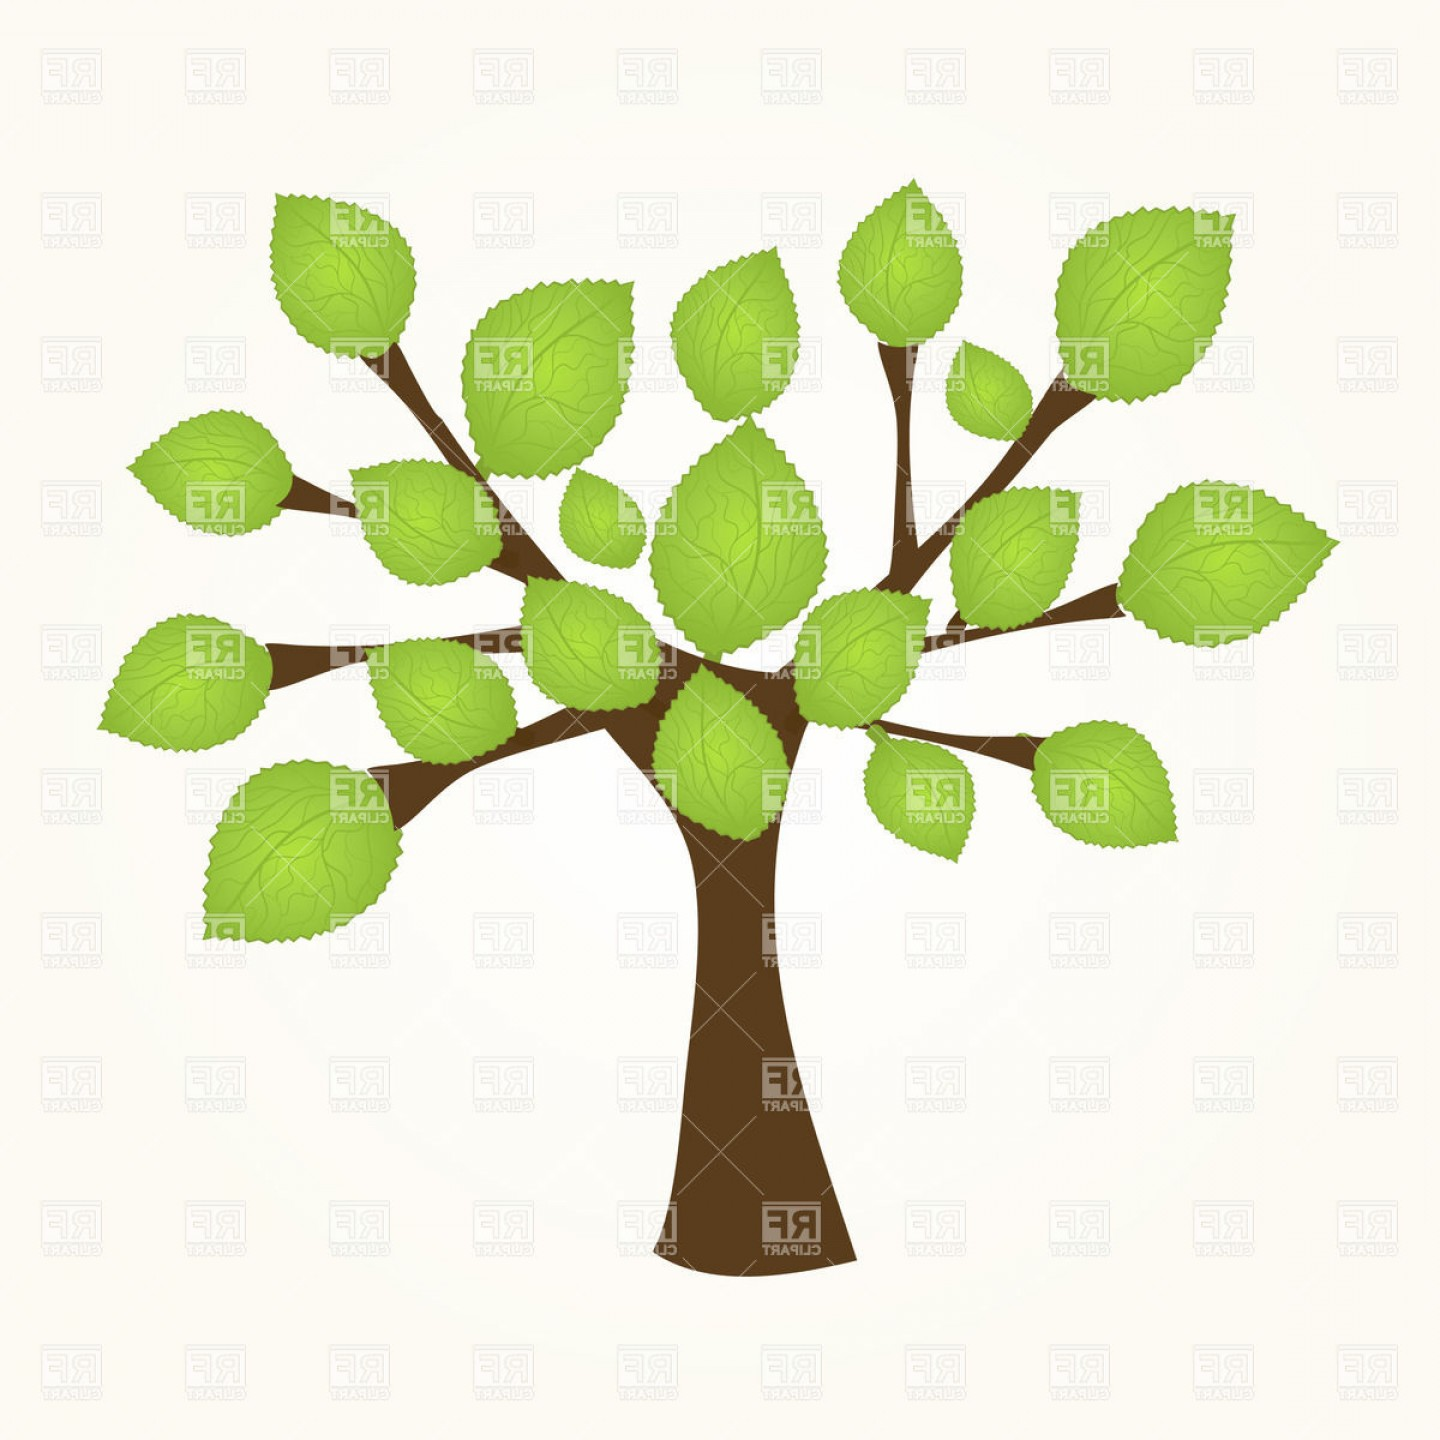 Sapling Vector Tree Silhouette Art: Small Tree Sapling With Green Leaves Vector Clipart